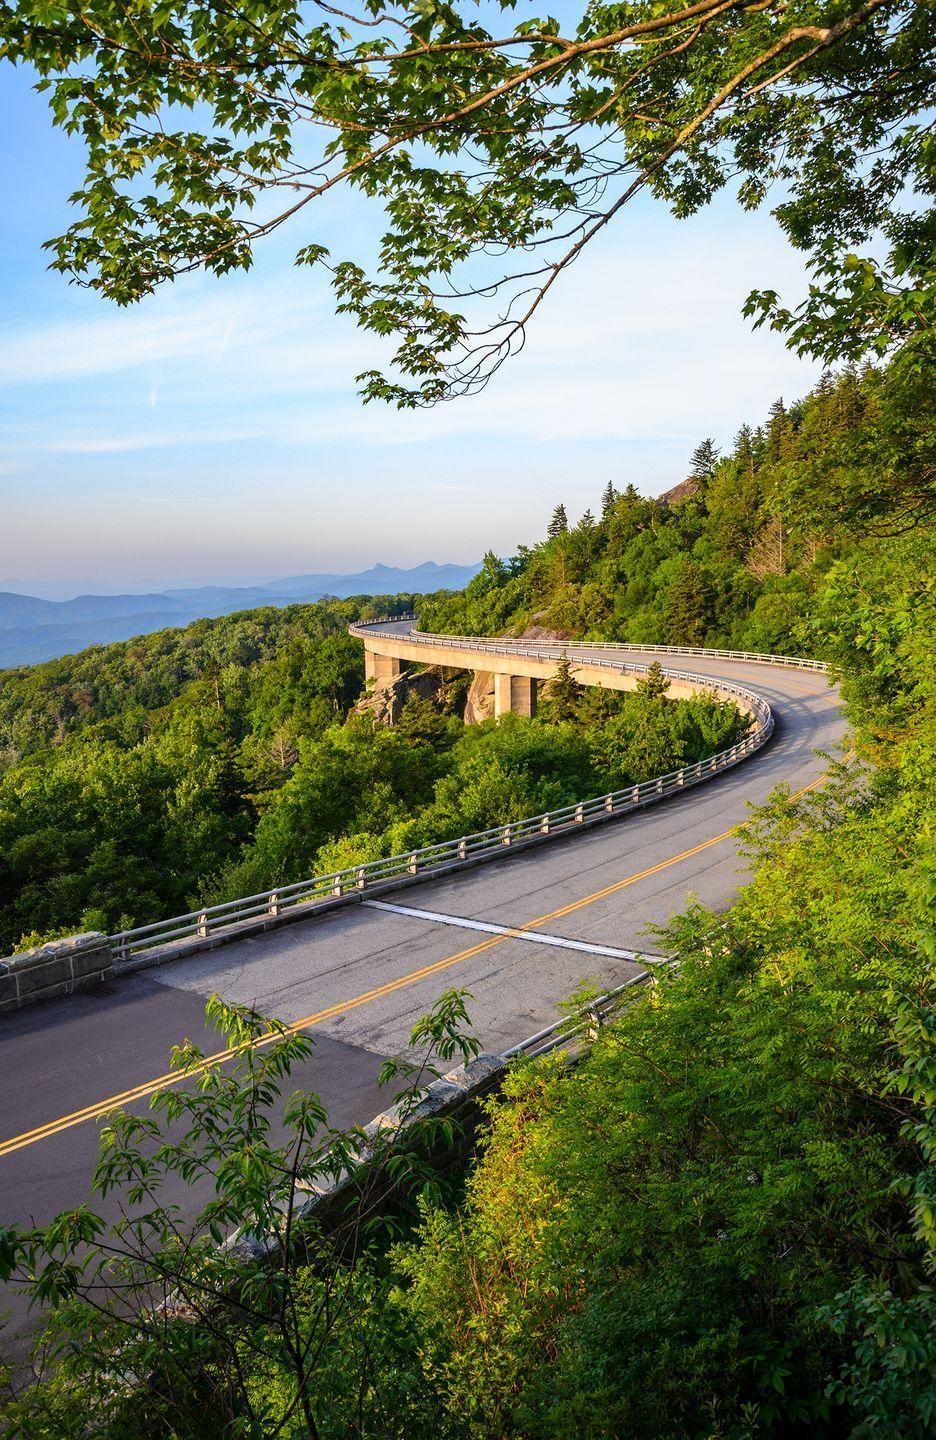 """<p><strong>The Drive:</strong> <a href=""""https://www.tripadvisor.com/Attraction_Review-g1438847-d108327-Reviews-Blue_Ridge_Parkway-North_Carolina_Mountains_North_Carolina.html"""" rel=""""nofollow noopener"""" target=""""_blank"""" data-ylk=""""slk:Blue Ridge Parkway"""" class=""""link rapid-noclick-resp"""">Blue Ridge Parkway</a></p><p><strong>The Scene:</strong> The <a href=""""https://www.tripadvisor.com/Tourism-g57520-Blue_Ridge_Virginia-Vacations.html"""" rel=""""nofollow noopener"""" target=""""_blank"""" data-ylk=""""slk:Blue Ridge"""" class=""""link rapid-noclick-resp"""">Blue Ridge</a> Parkway begins in the northern <a href=""""https://www.tripadvisor.com/Attraction_Review-g28967-d477530-Reviews-Shenandoah_Valley-Virginia.html"""" rel=""""nofollow noopener"""" target=""""_blank"""" data-ylk=""""slk:Shenandoah Valley"""" class=""""link rapid-noclick-resp"""">Shenandoah Valley</a> and travels 469 miles into North Carolina, as you head through the Appalachian Mountains for some of the best scenery in Virginia. </p><p><strong>The Pit-Stop:</strong> Plan a family vacation at the <a href=""""https://www.tripadvisor.com/Attraction_Review-g28967-d279568-Reviews-Peaks_of_Otter_Visitor_Center-Virginia.html"""" rel=""""nofollow noopener"""" target=""""_blank"""" data-ylk=""""slk:Peaks of Otter"""" class=""""link rapid-noclick-resp"""">Peaks of Otter</a>, a scenic setting that has attracted travelers since the 1800s. </p>"""